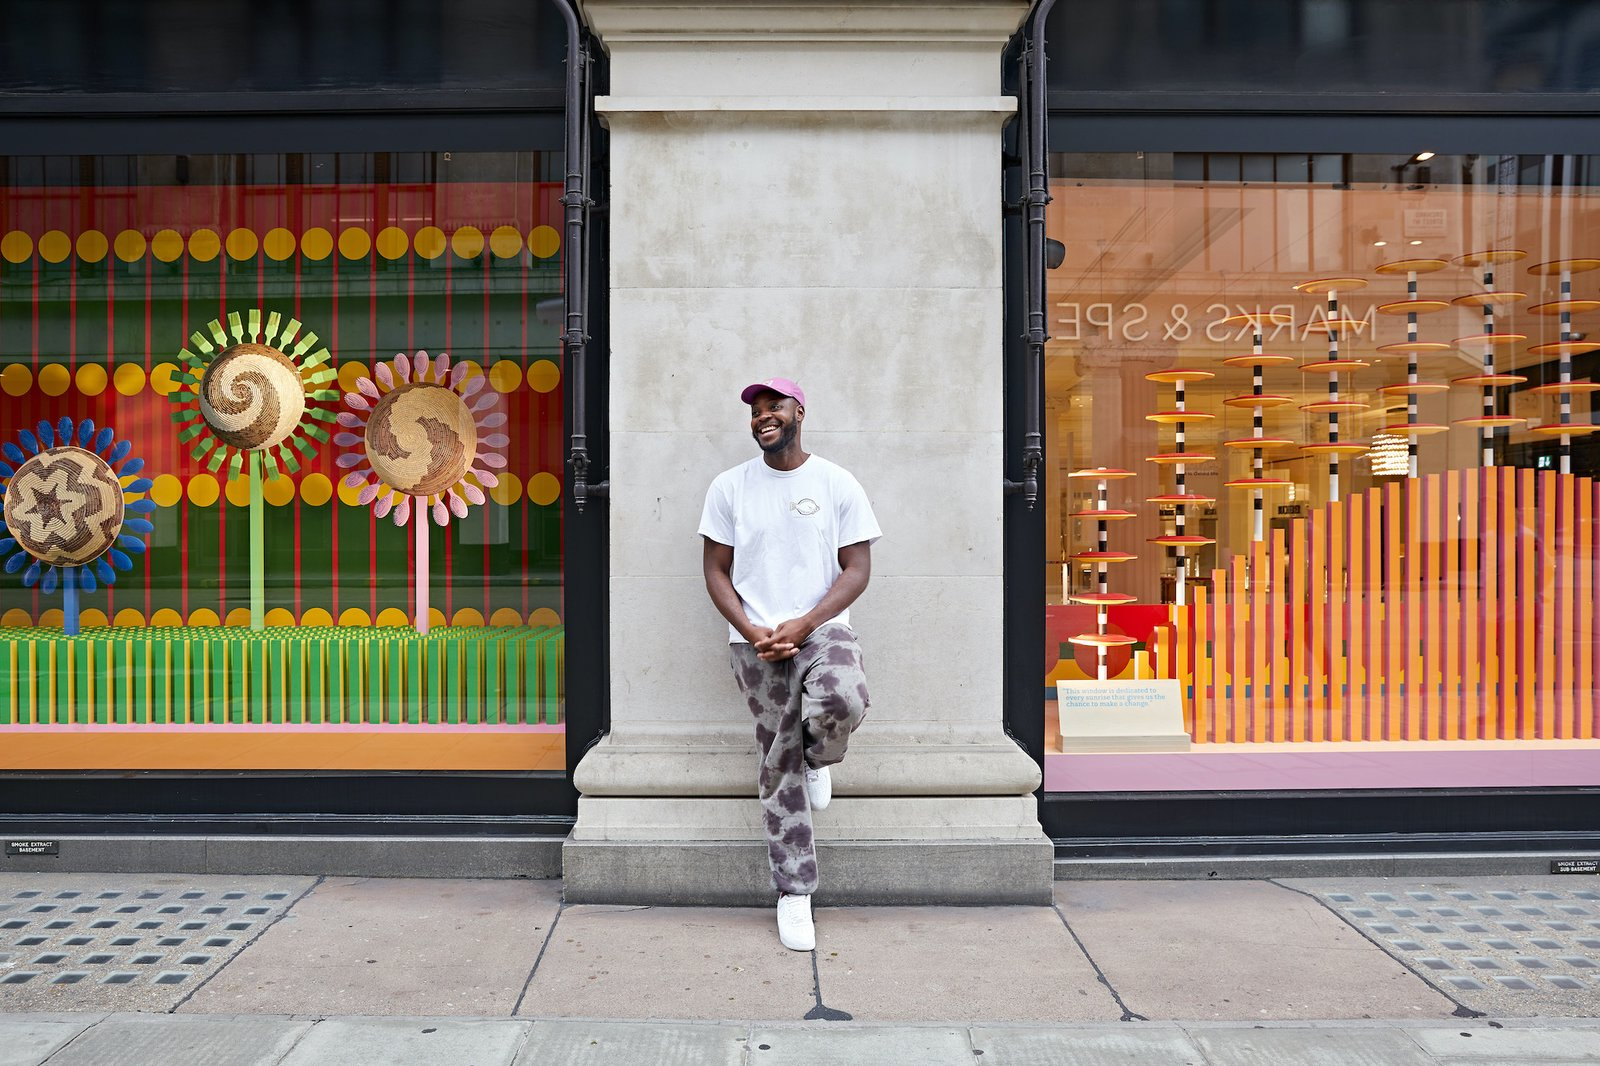 Yinka Ilori tells us about his passion for color, how public spaces can bring communities together, and why his parents are his biggest inspiration.